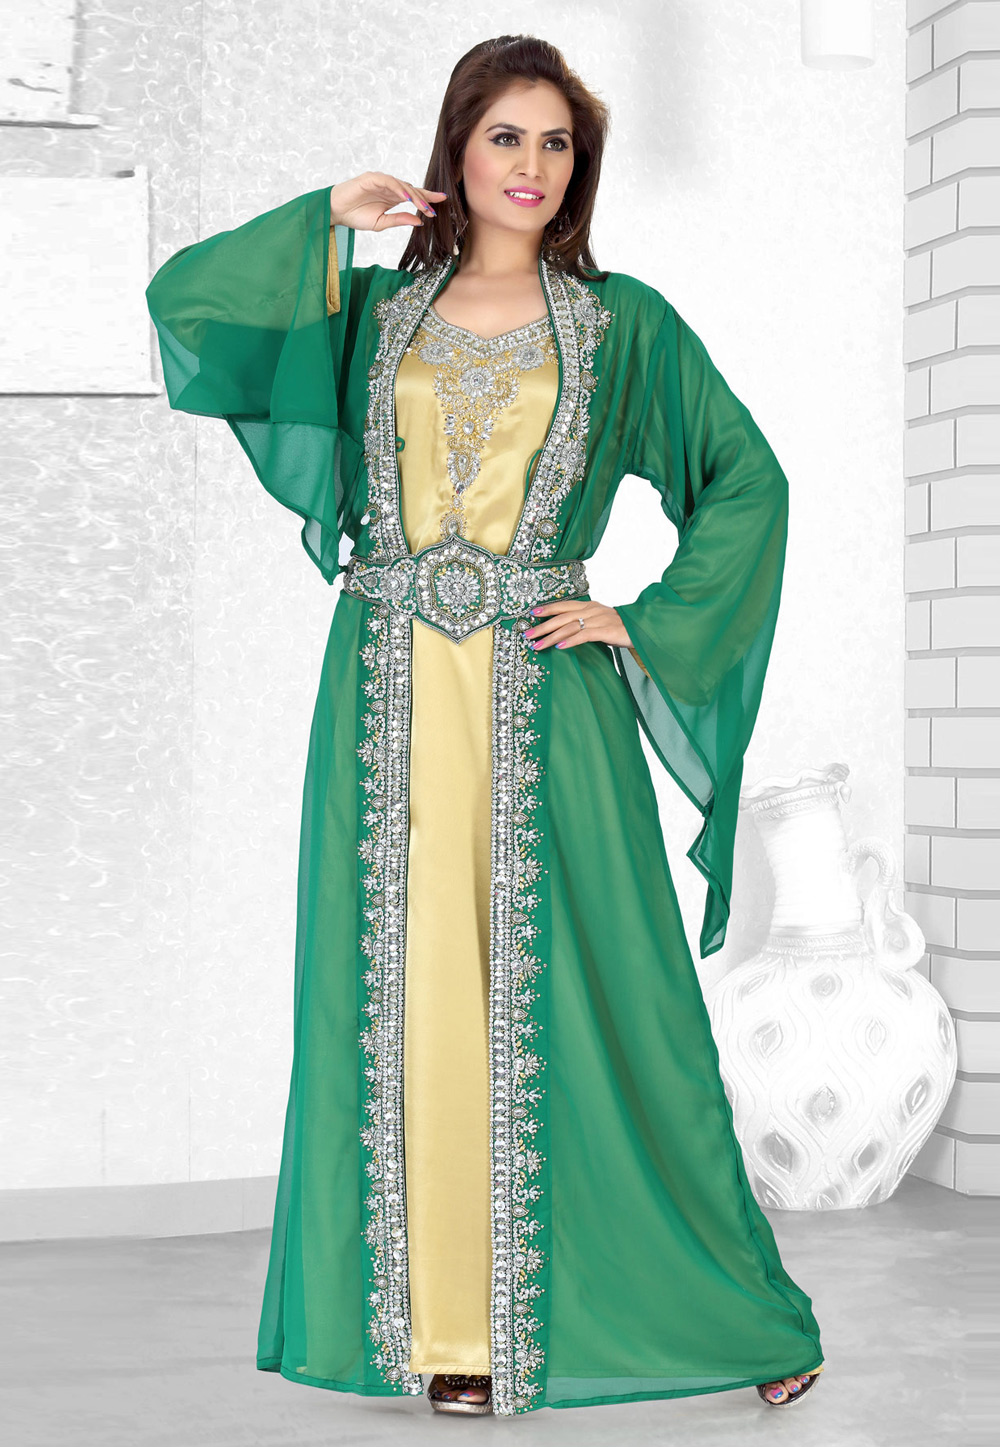 Green Faux Georgette Embroidered Readymade Moroccan Kaftan 194509